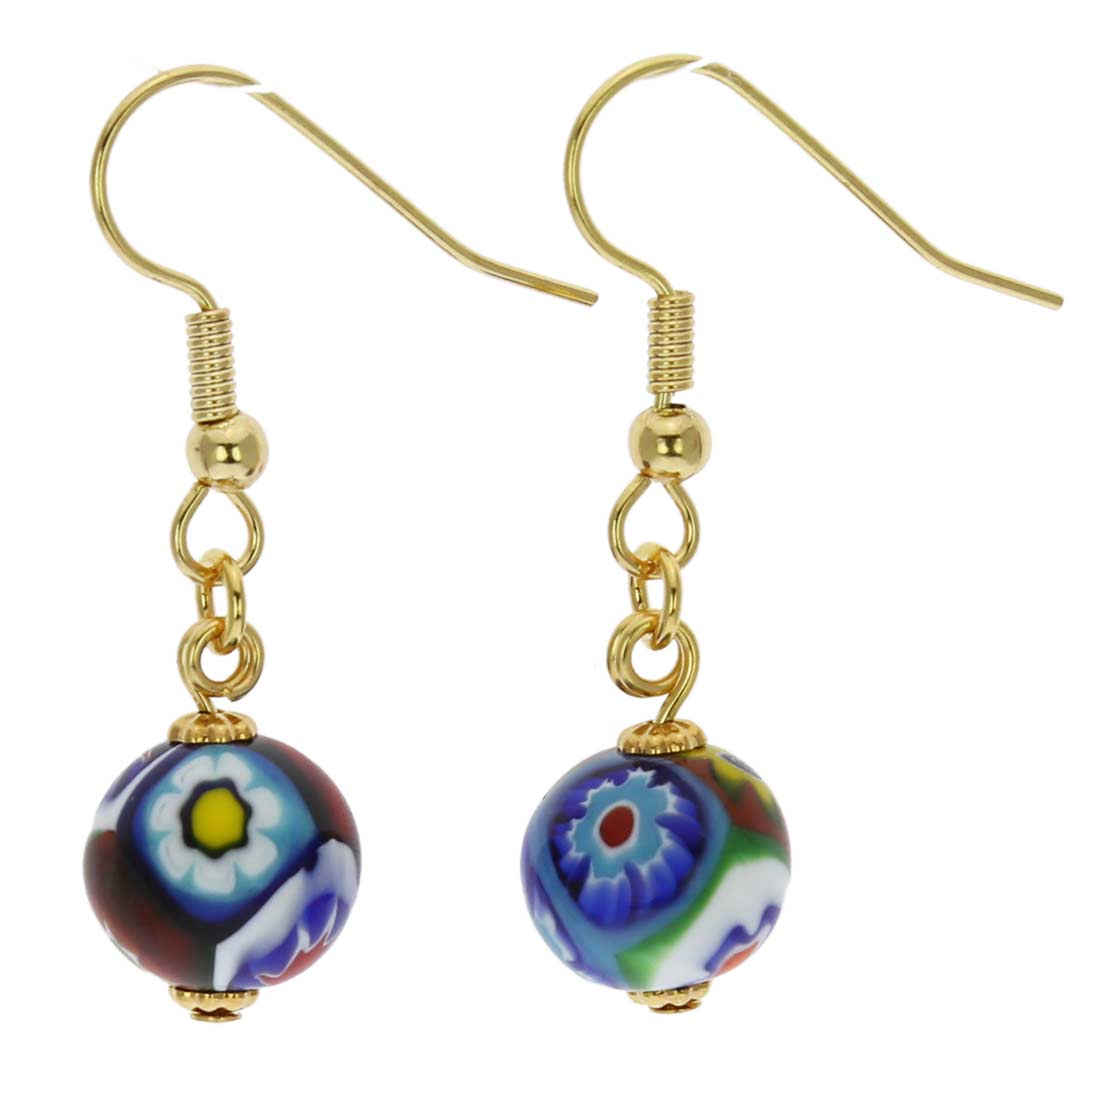 Murano Mosaic Millefiori Ball Earrings - Gold